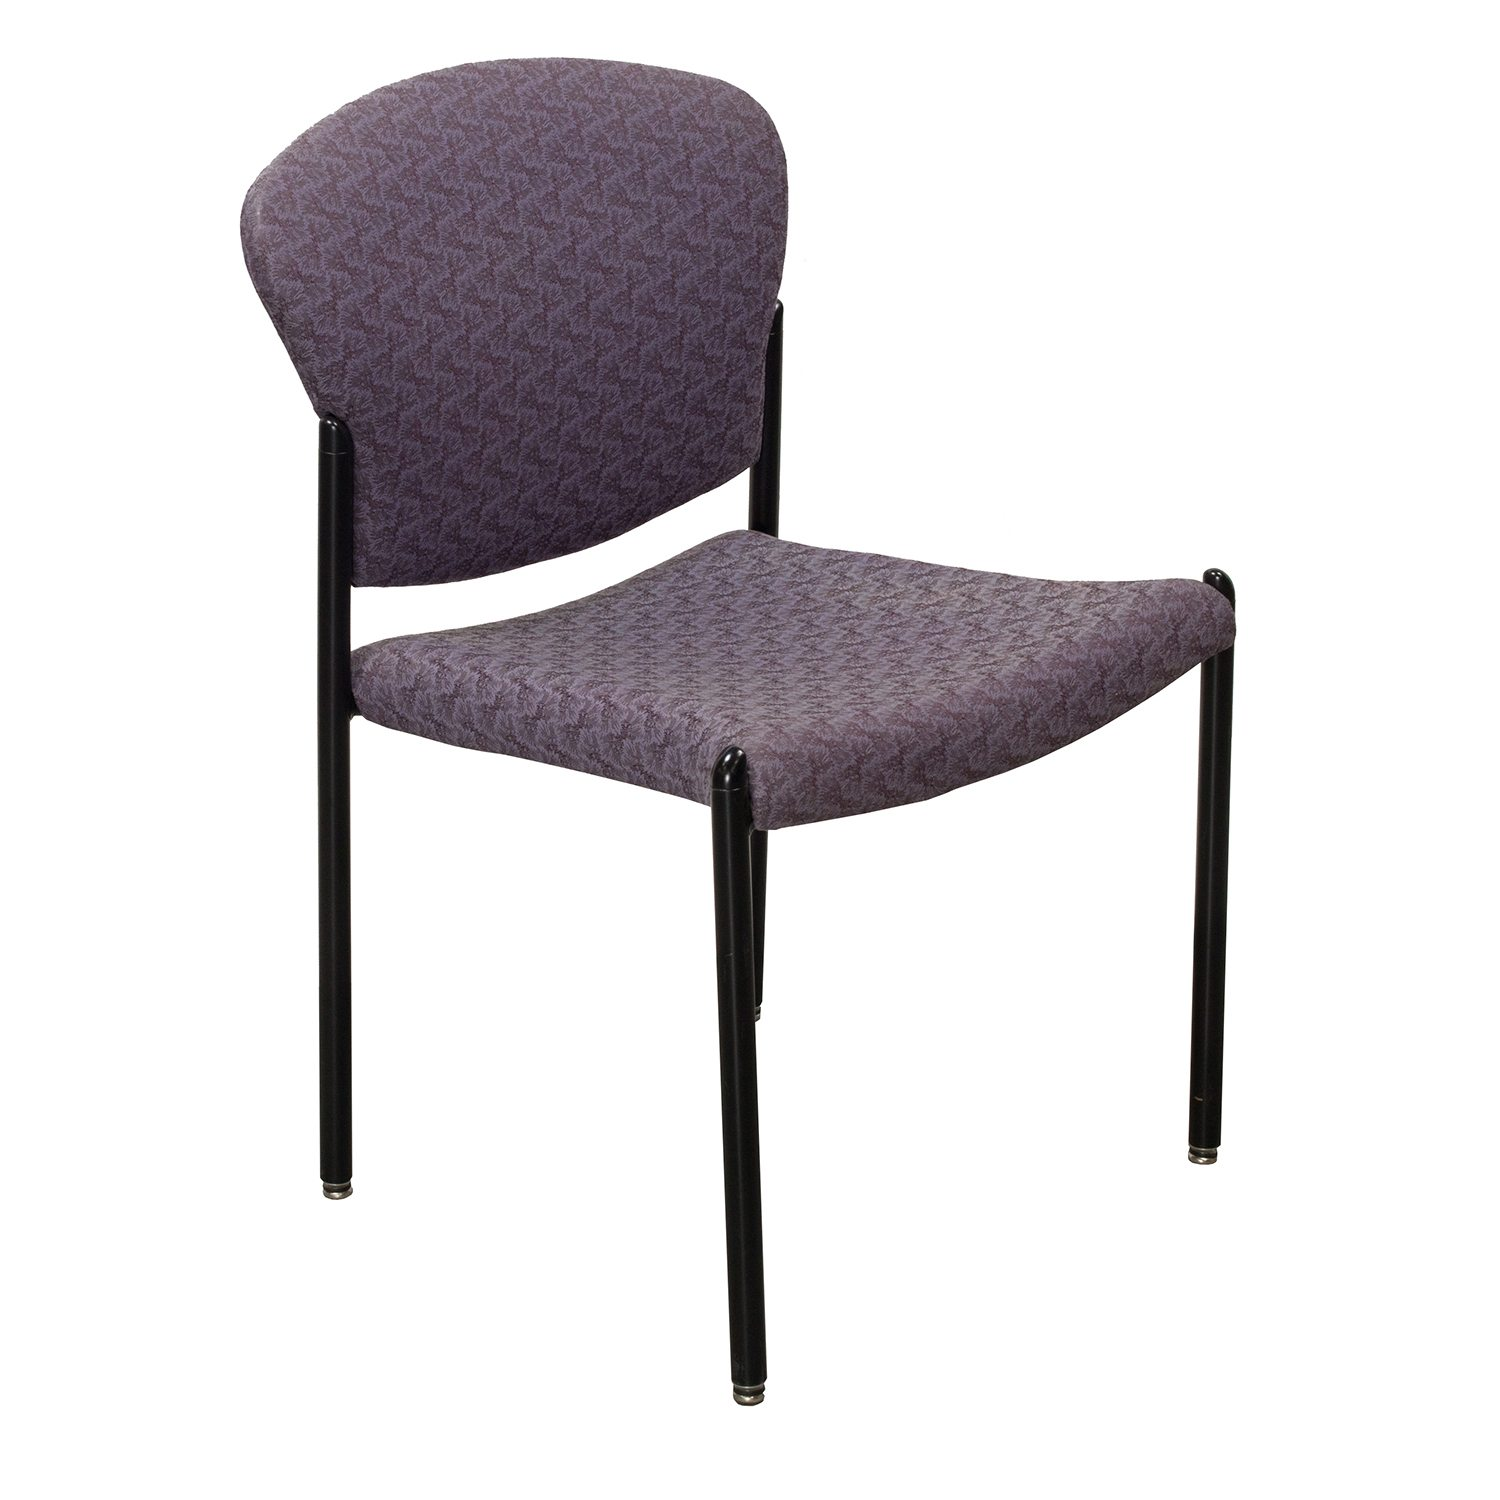 allsteel relate side chair serta review tolleson used stack purple national